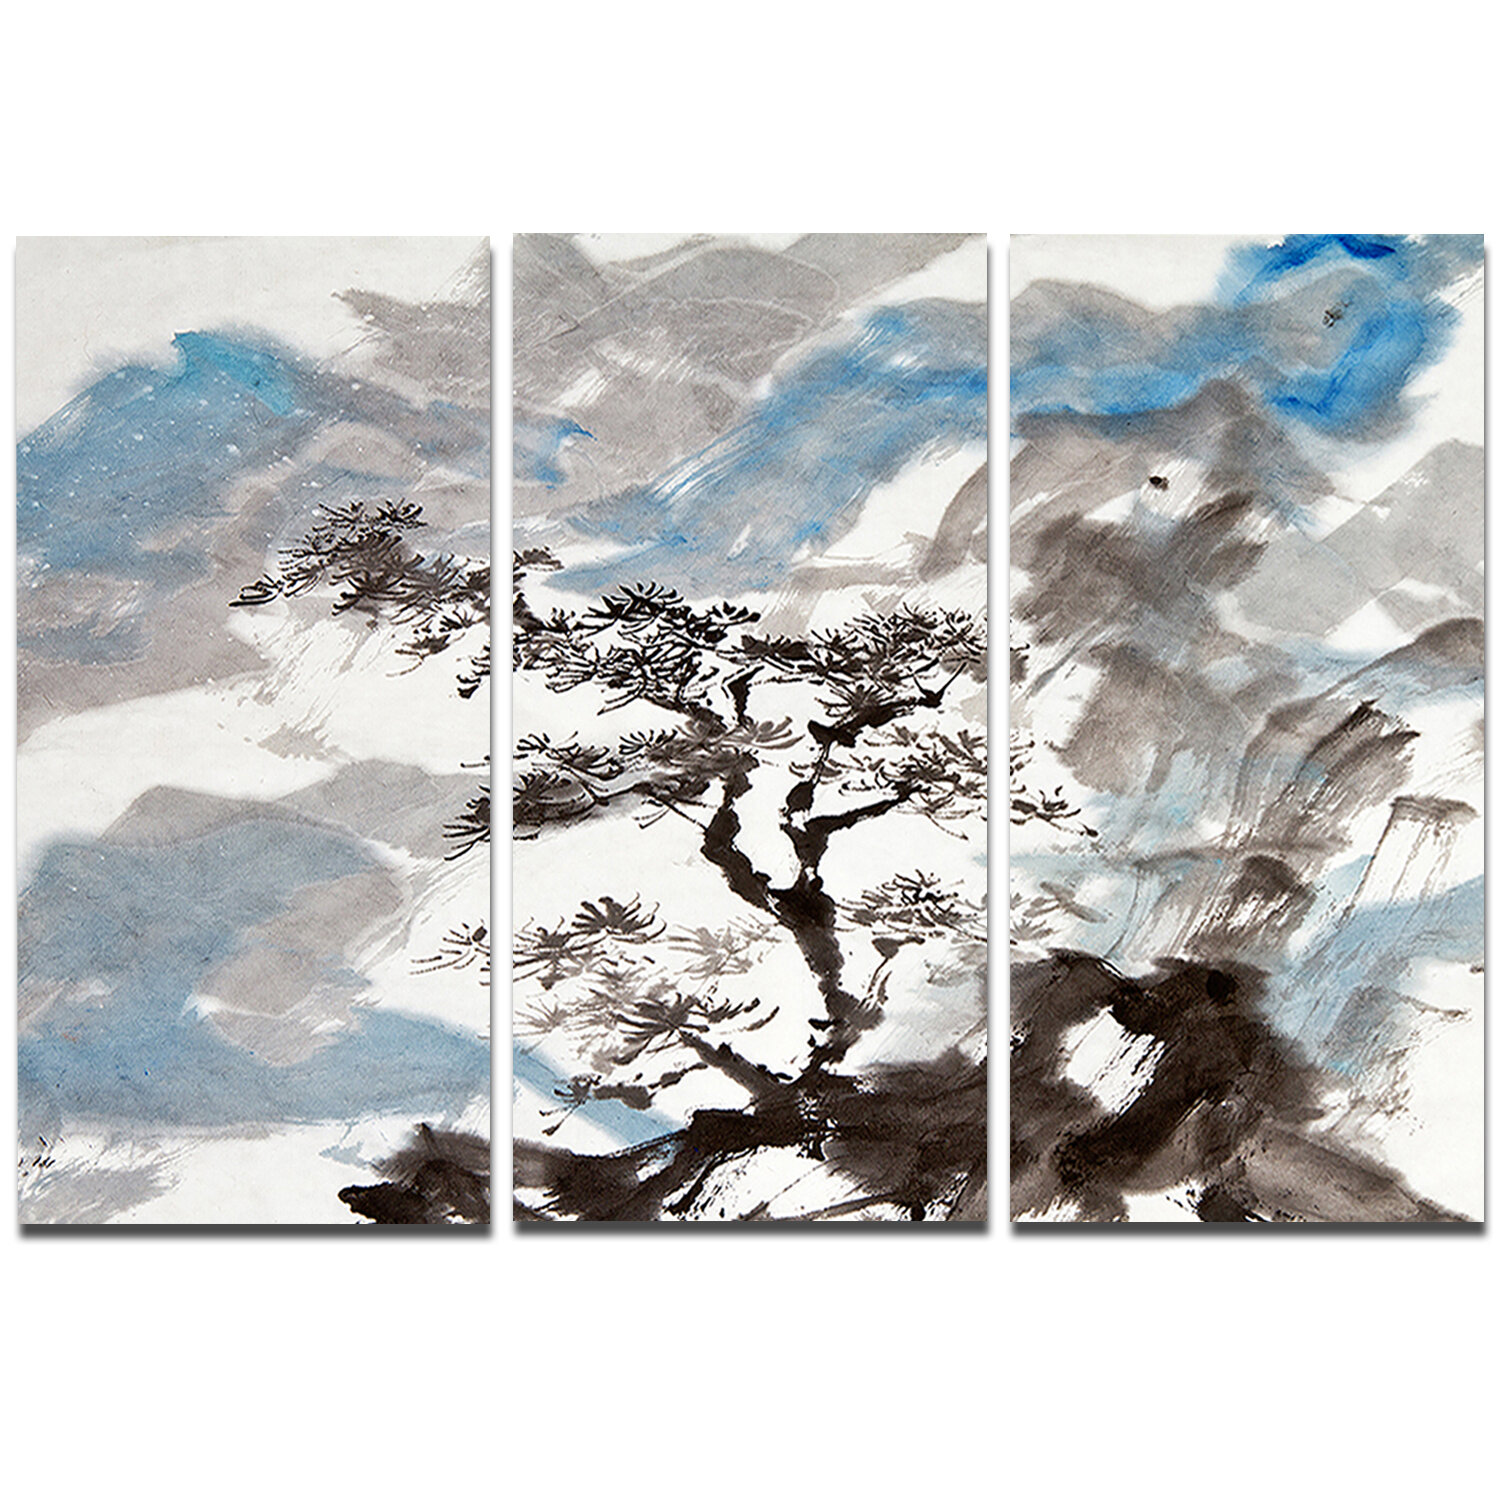 Designart Chinese Pine Tree 3 Piece Painting Print On Wrapped Canvas Set Wayfair Ca